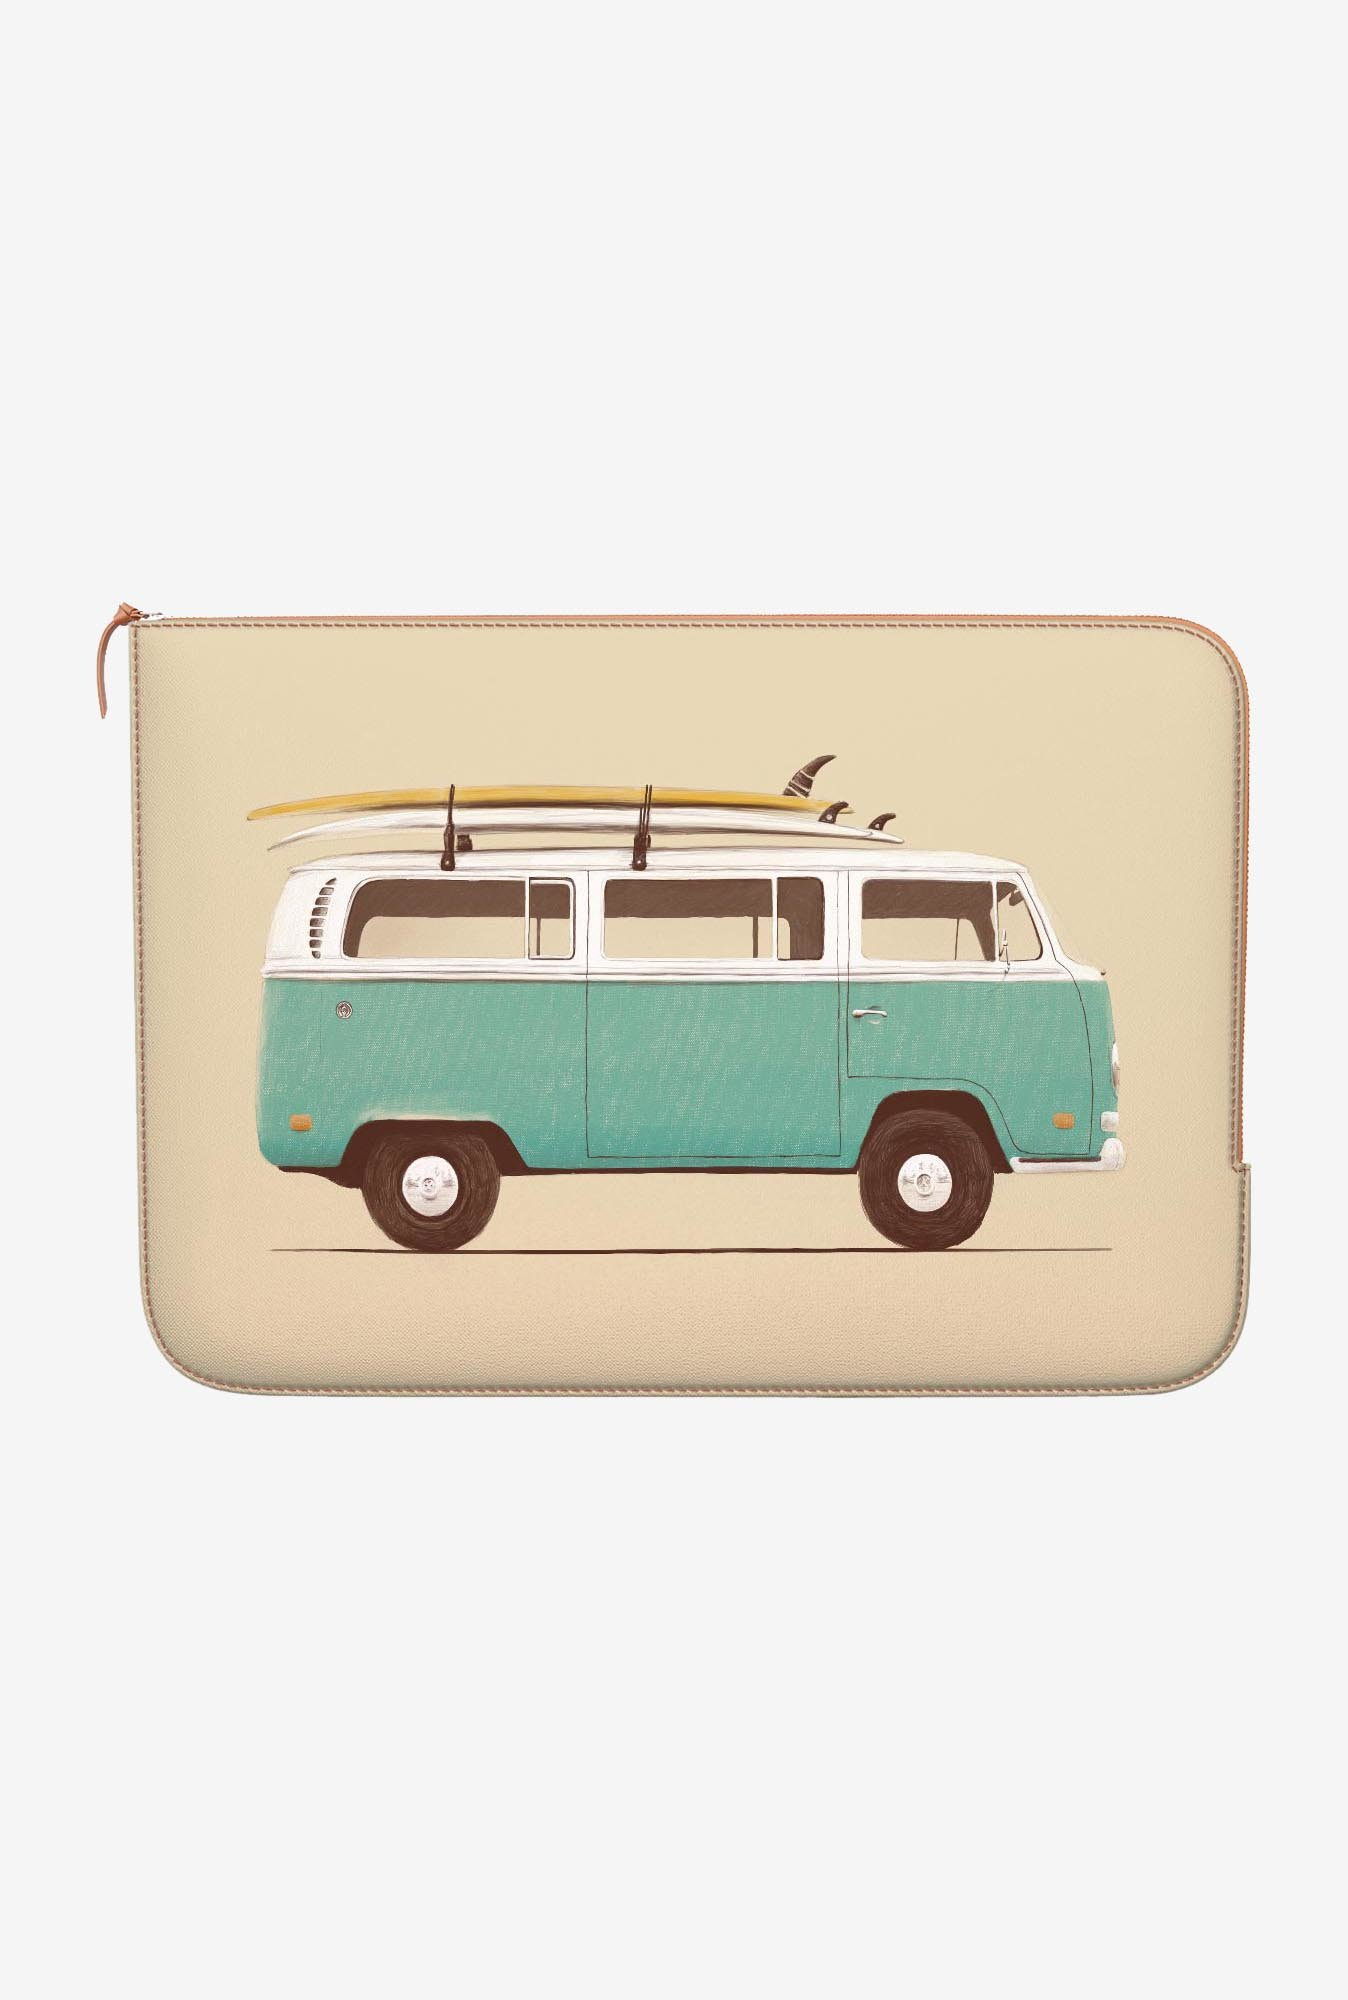 DailyObjects Green Van MacBook Air 11 Zippered Sleeve